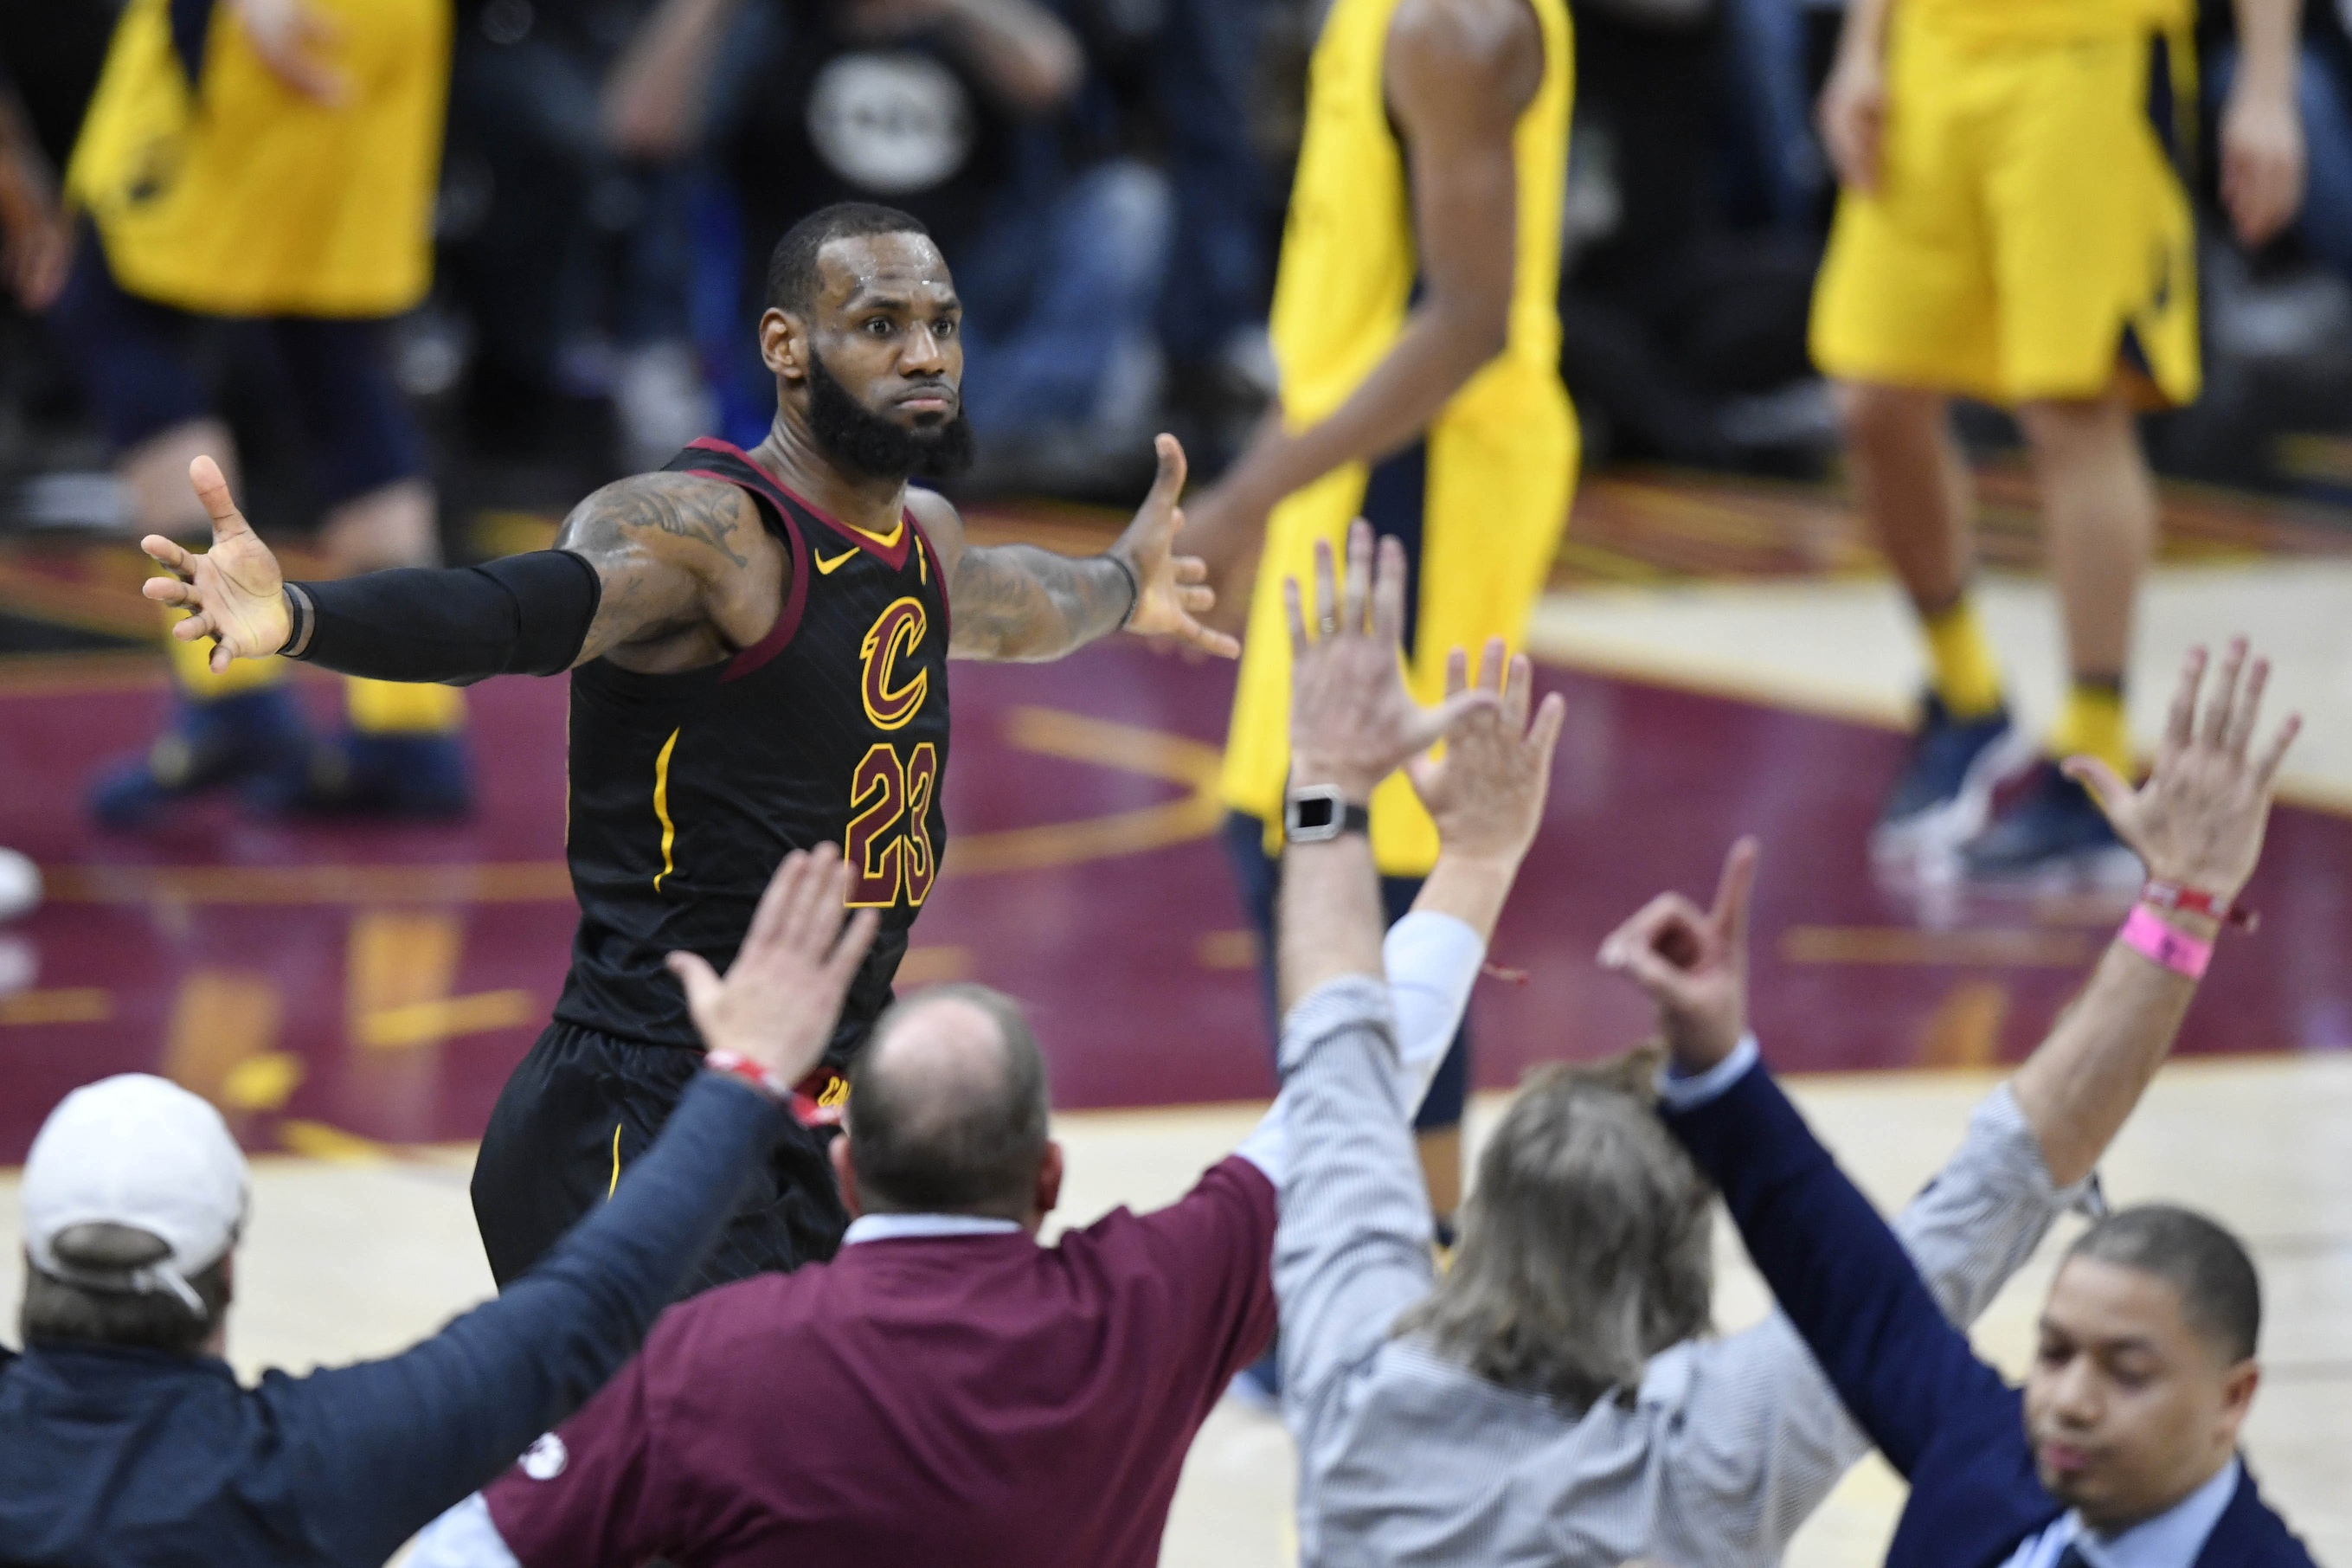 LeBron Nails Buzzer Beater, But Did He Commit Goaltending First? | SportsLingo